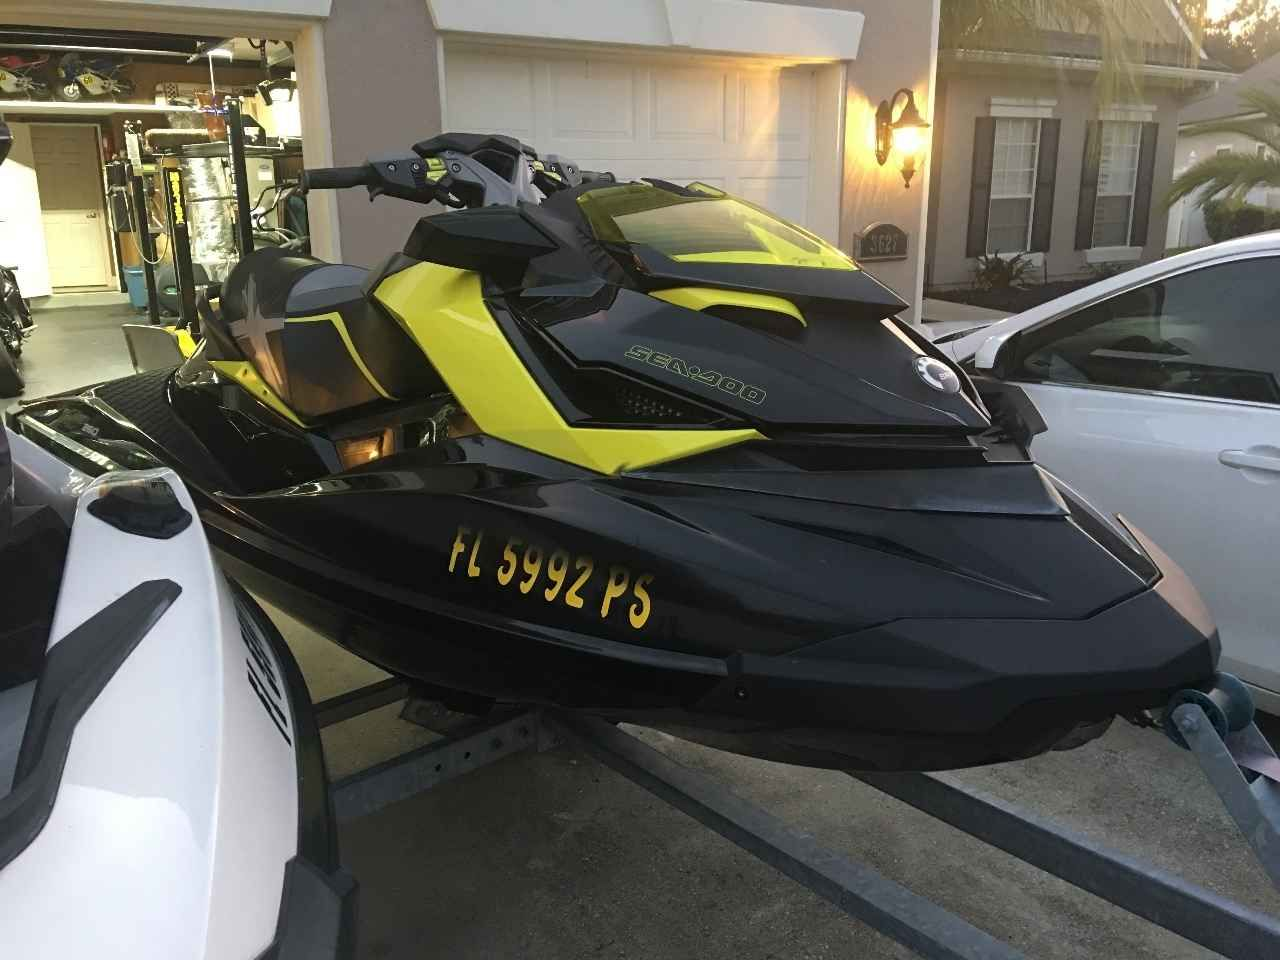 Used 2012 Sea Doo RXP X 260 Jet Skis For Sale in Florida,FL